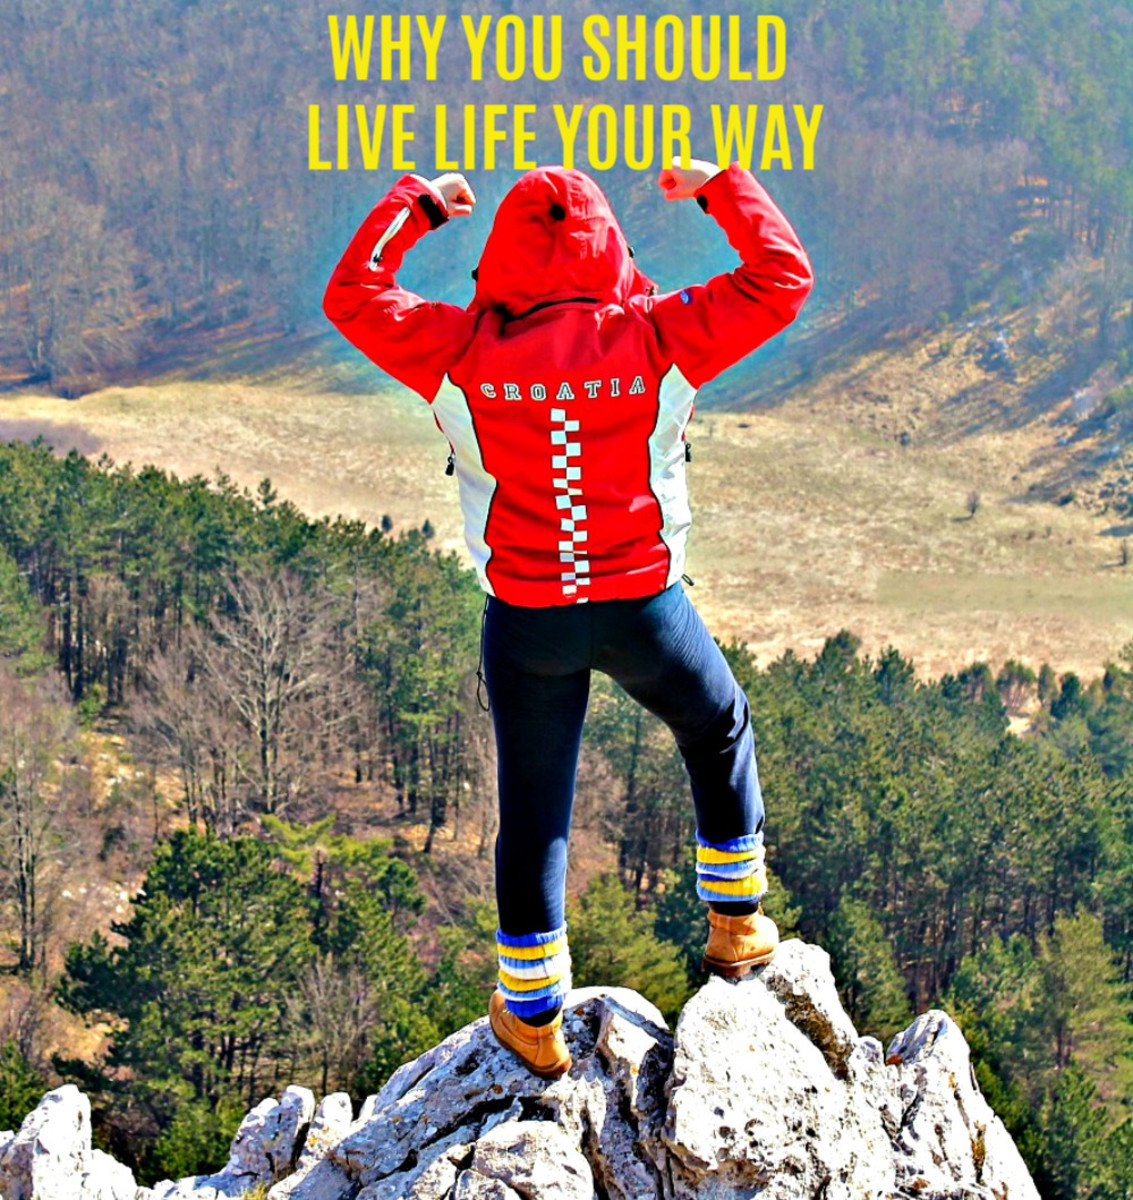 Why living life your way is a good decision.